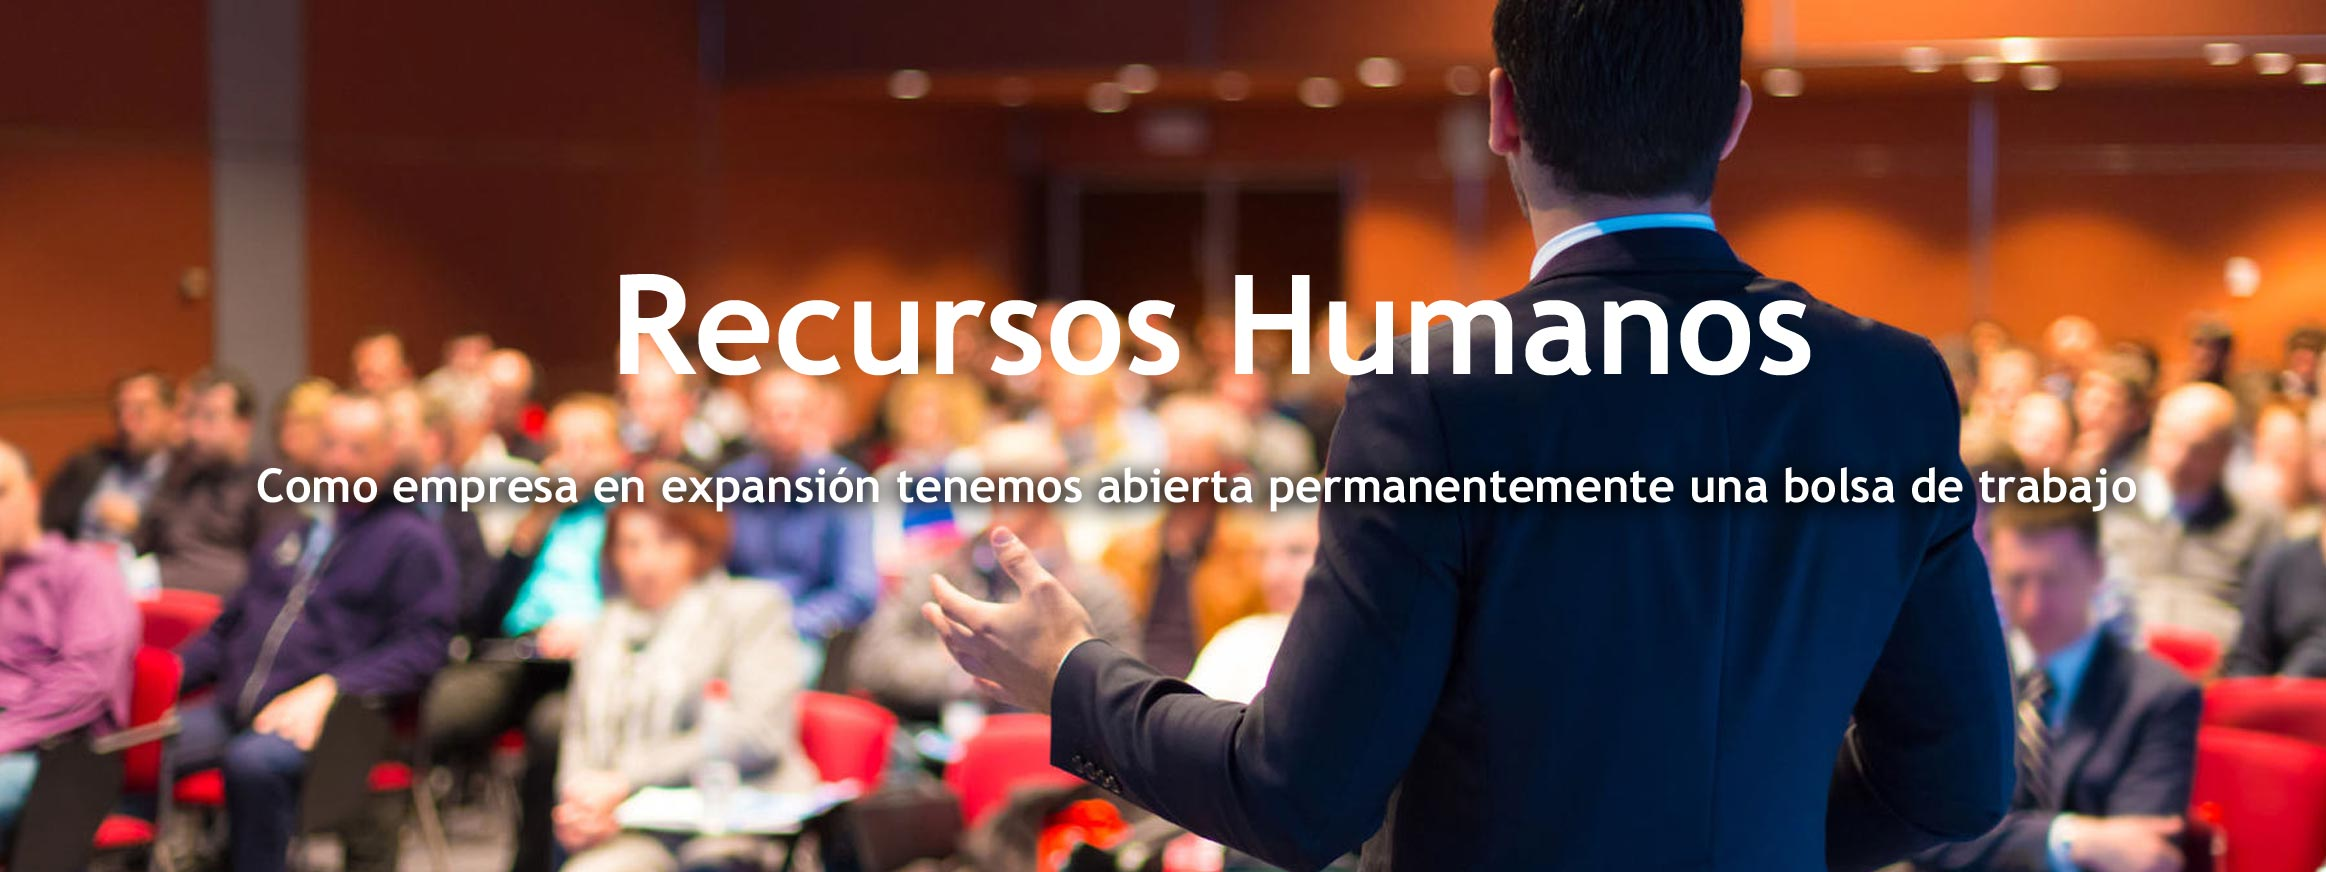 Norgestion Asesores -  Recursos Humanos - NORGESTION ASESORES, S.L.